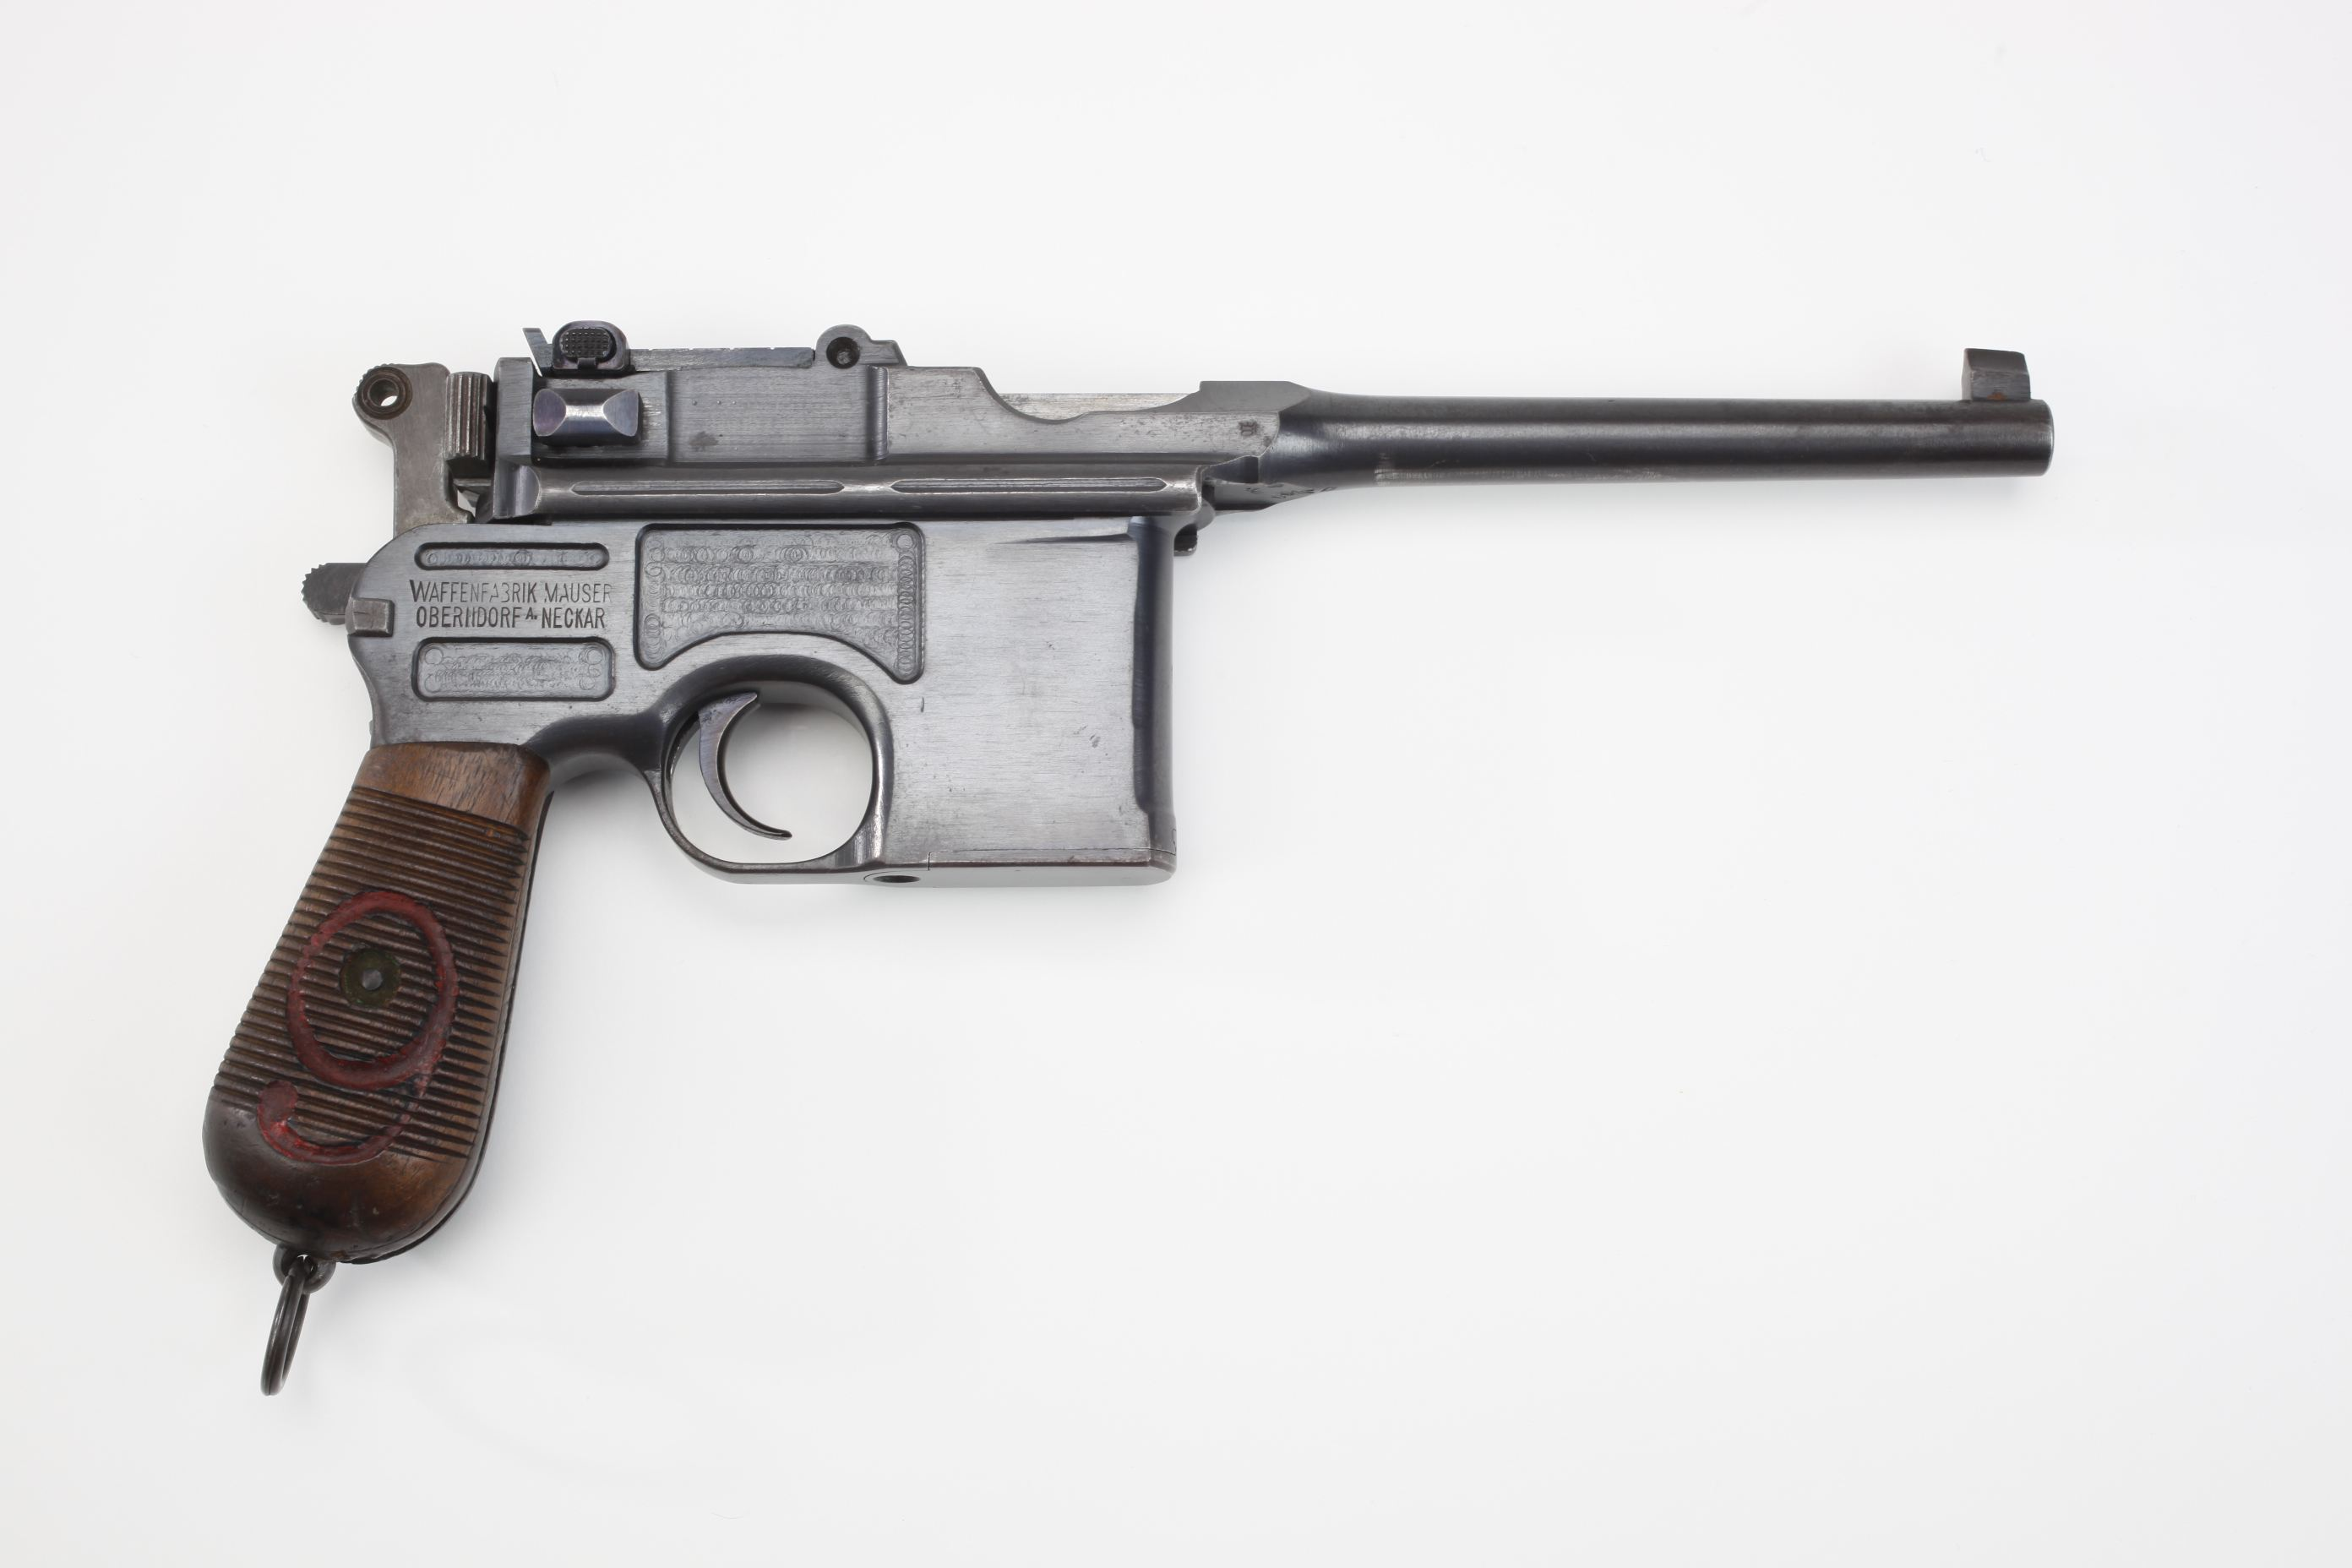 Mauser Model 1896 Broomhandle Semi Automatic Pistol (2)